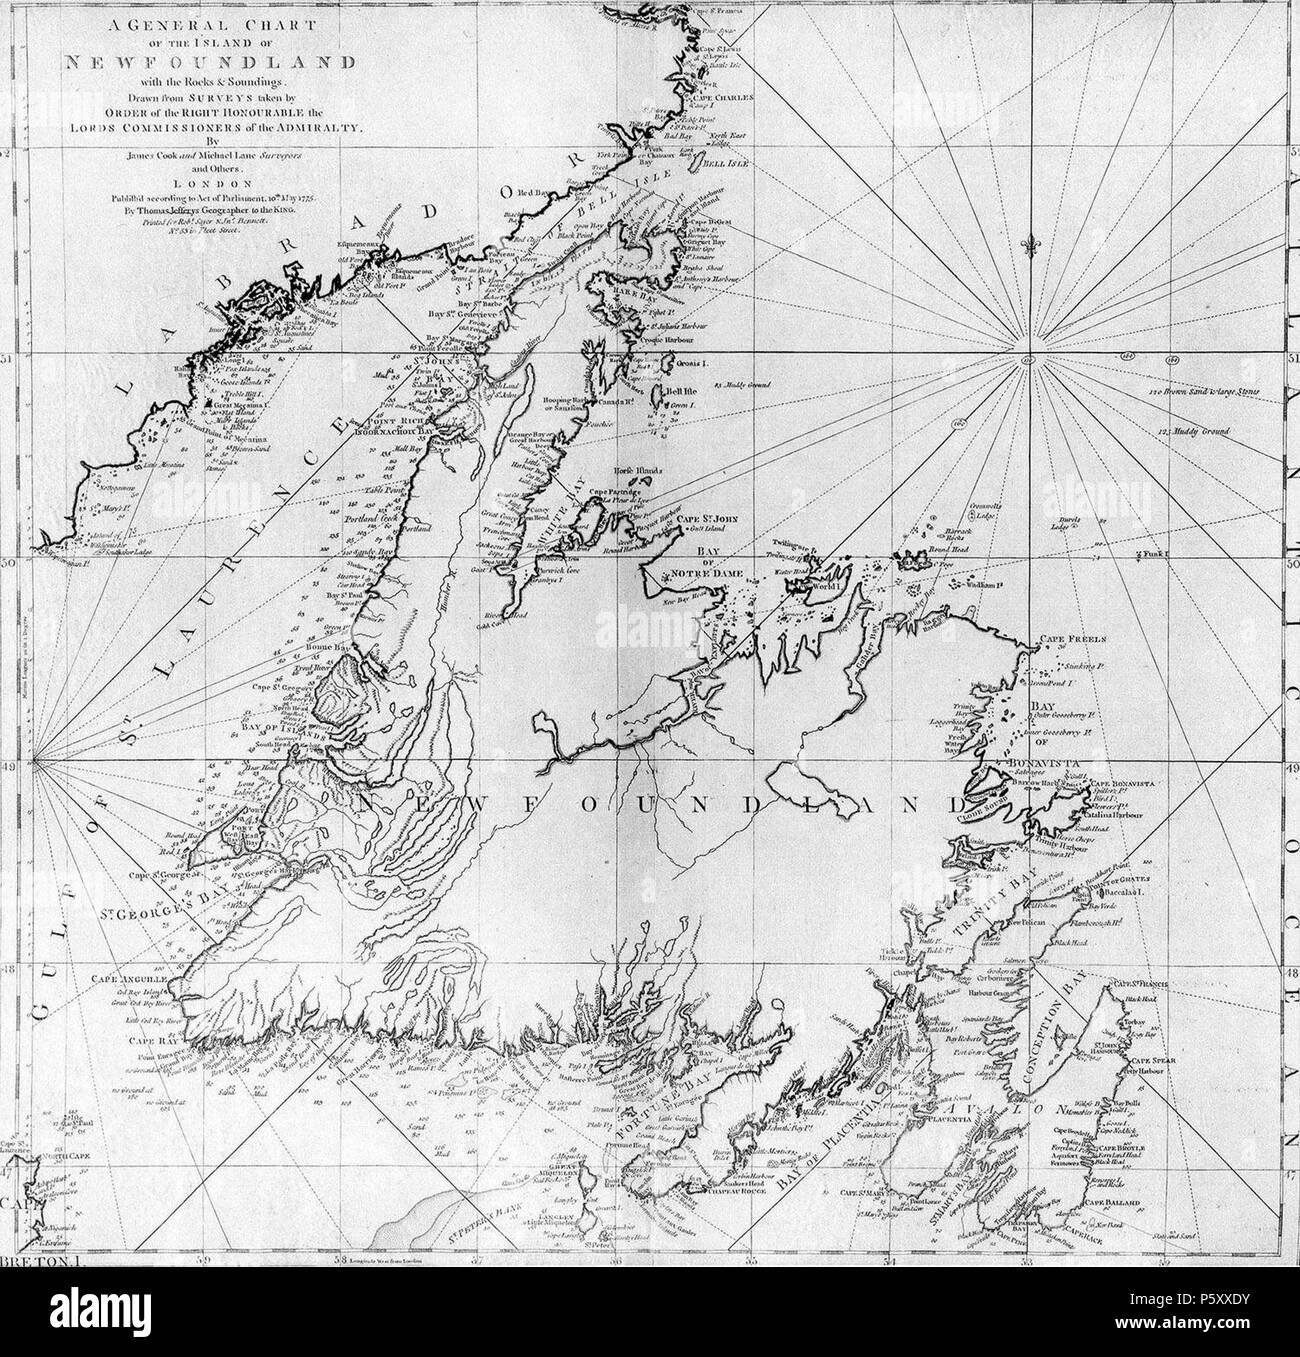 N/A. A general chart of the island of Newfoundland. Surveyed by James Cook and Michael Lane, and 'publish'd according to Act of Parliament by Thomas Jefferys Geographer to the King, 1775.' . 1775. Michael Lane and James Cook 377 Cooks Karte von Neufundland - Stock Image